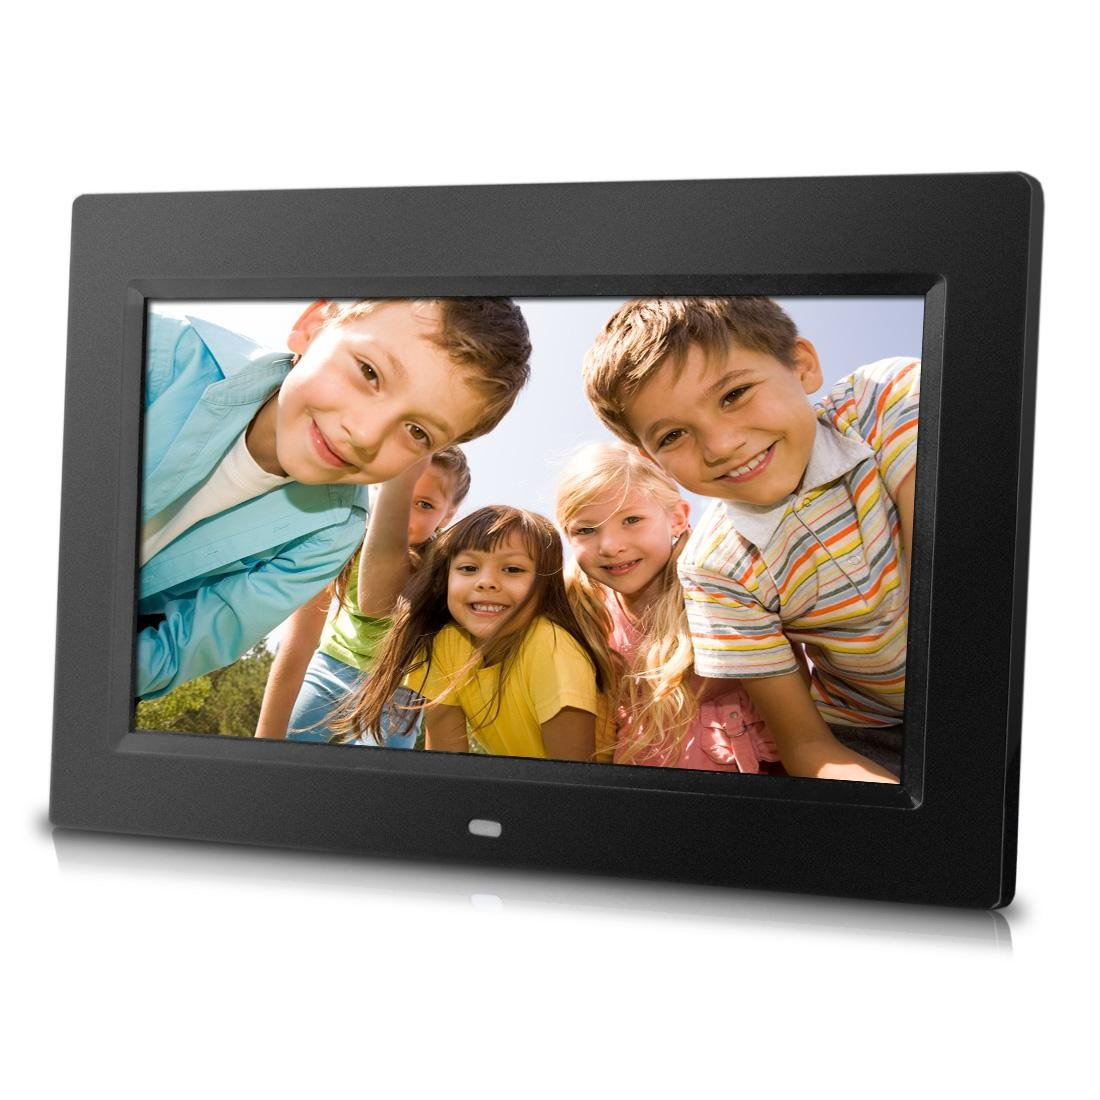 Sungale PF1025 10-Inch Digital Photo Frame with Hi-resolution, various transitional effects, slideshow, interval time adjustment. Simply plug in a SD card or Flash Drive to access & display photos